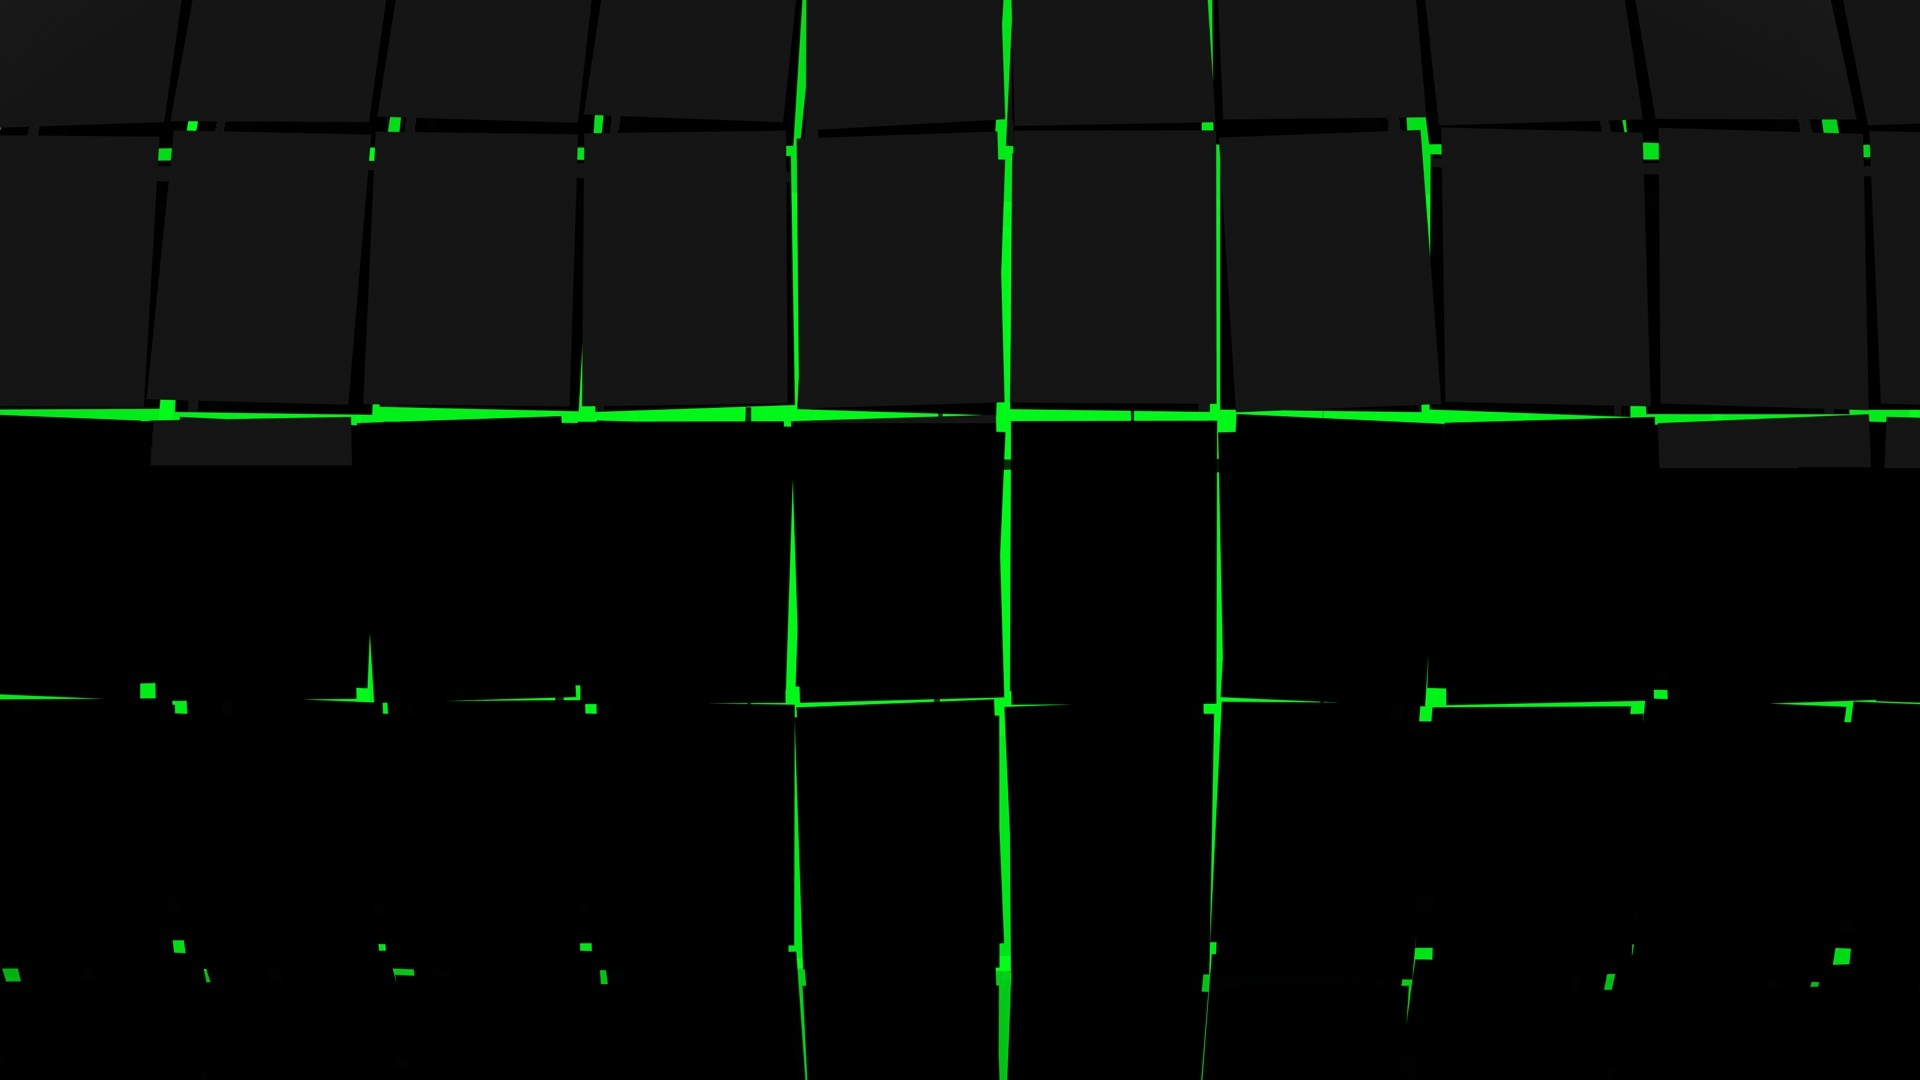 Amazing Wallpapers For Desktop Hd Free Download Green And Black Abstract Wallpaper 71 Images